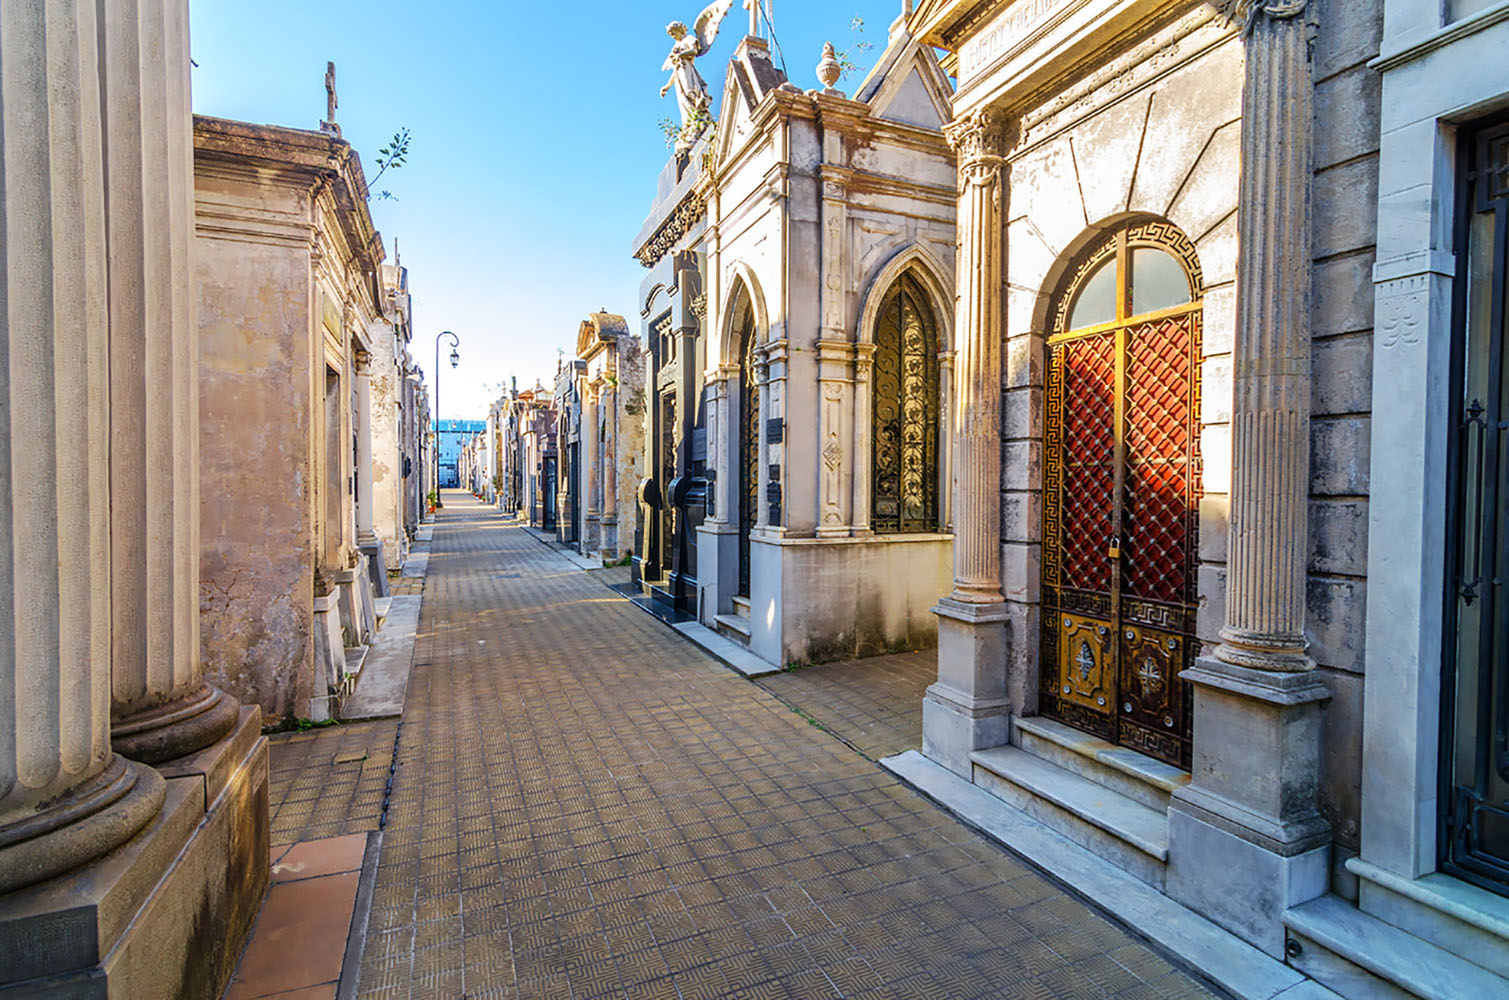 The narrow laneways of Recoleta Cemetery on a clear sunny day